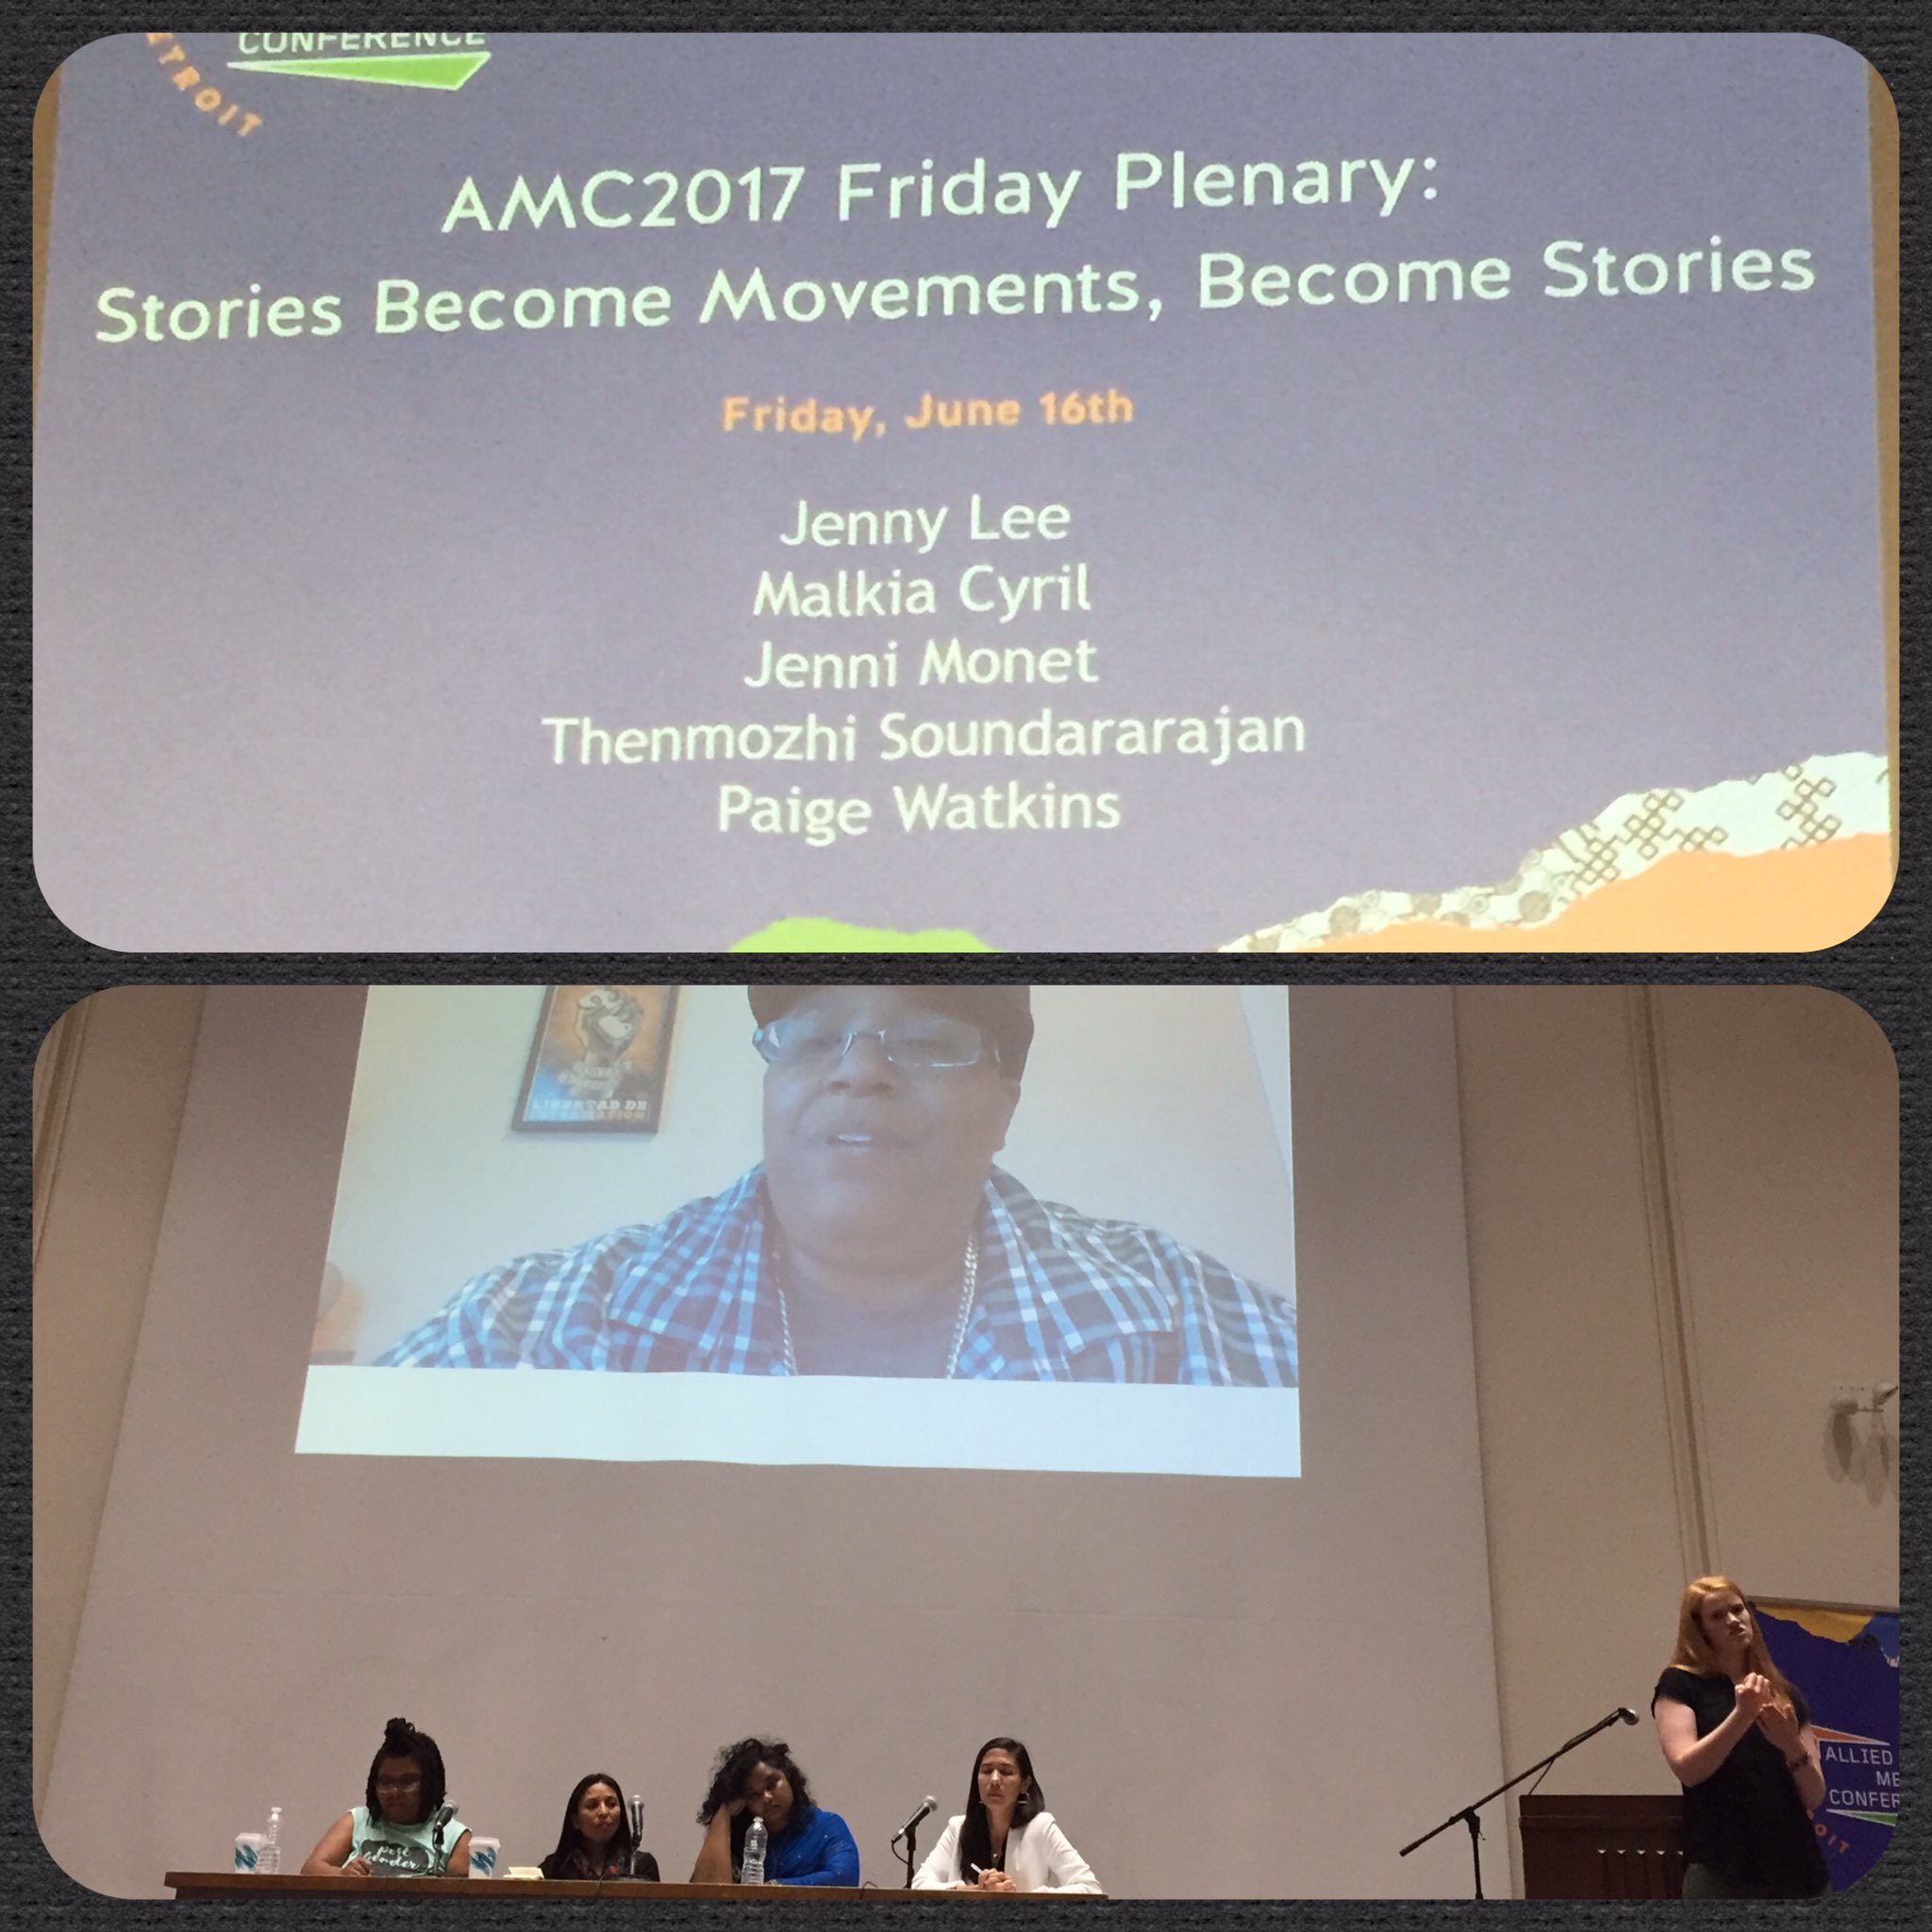 "Inspiring panelists & stories @ opening plenary, exactly what I needed. ""stories are the medicine we need"" @dalitdiva #amc2017 #AMC2017 https://t.co/FqNjlIR23r"